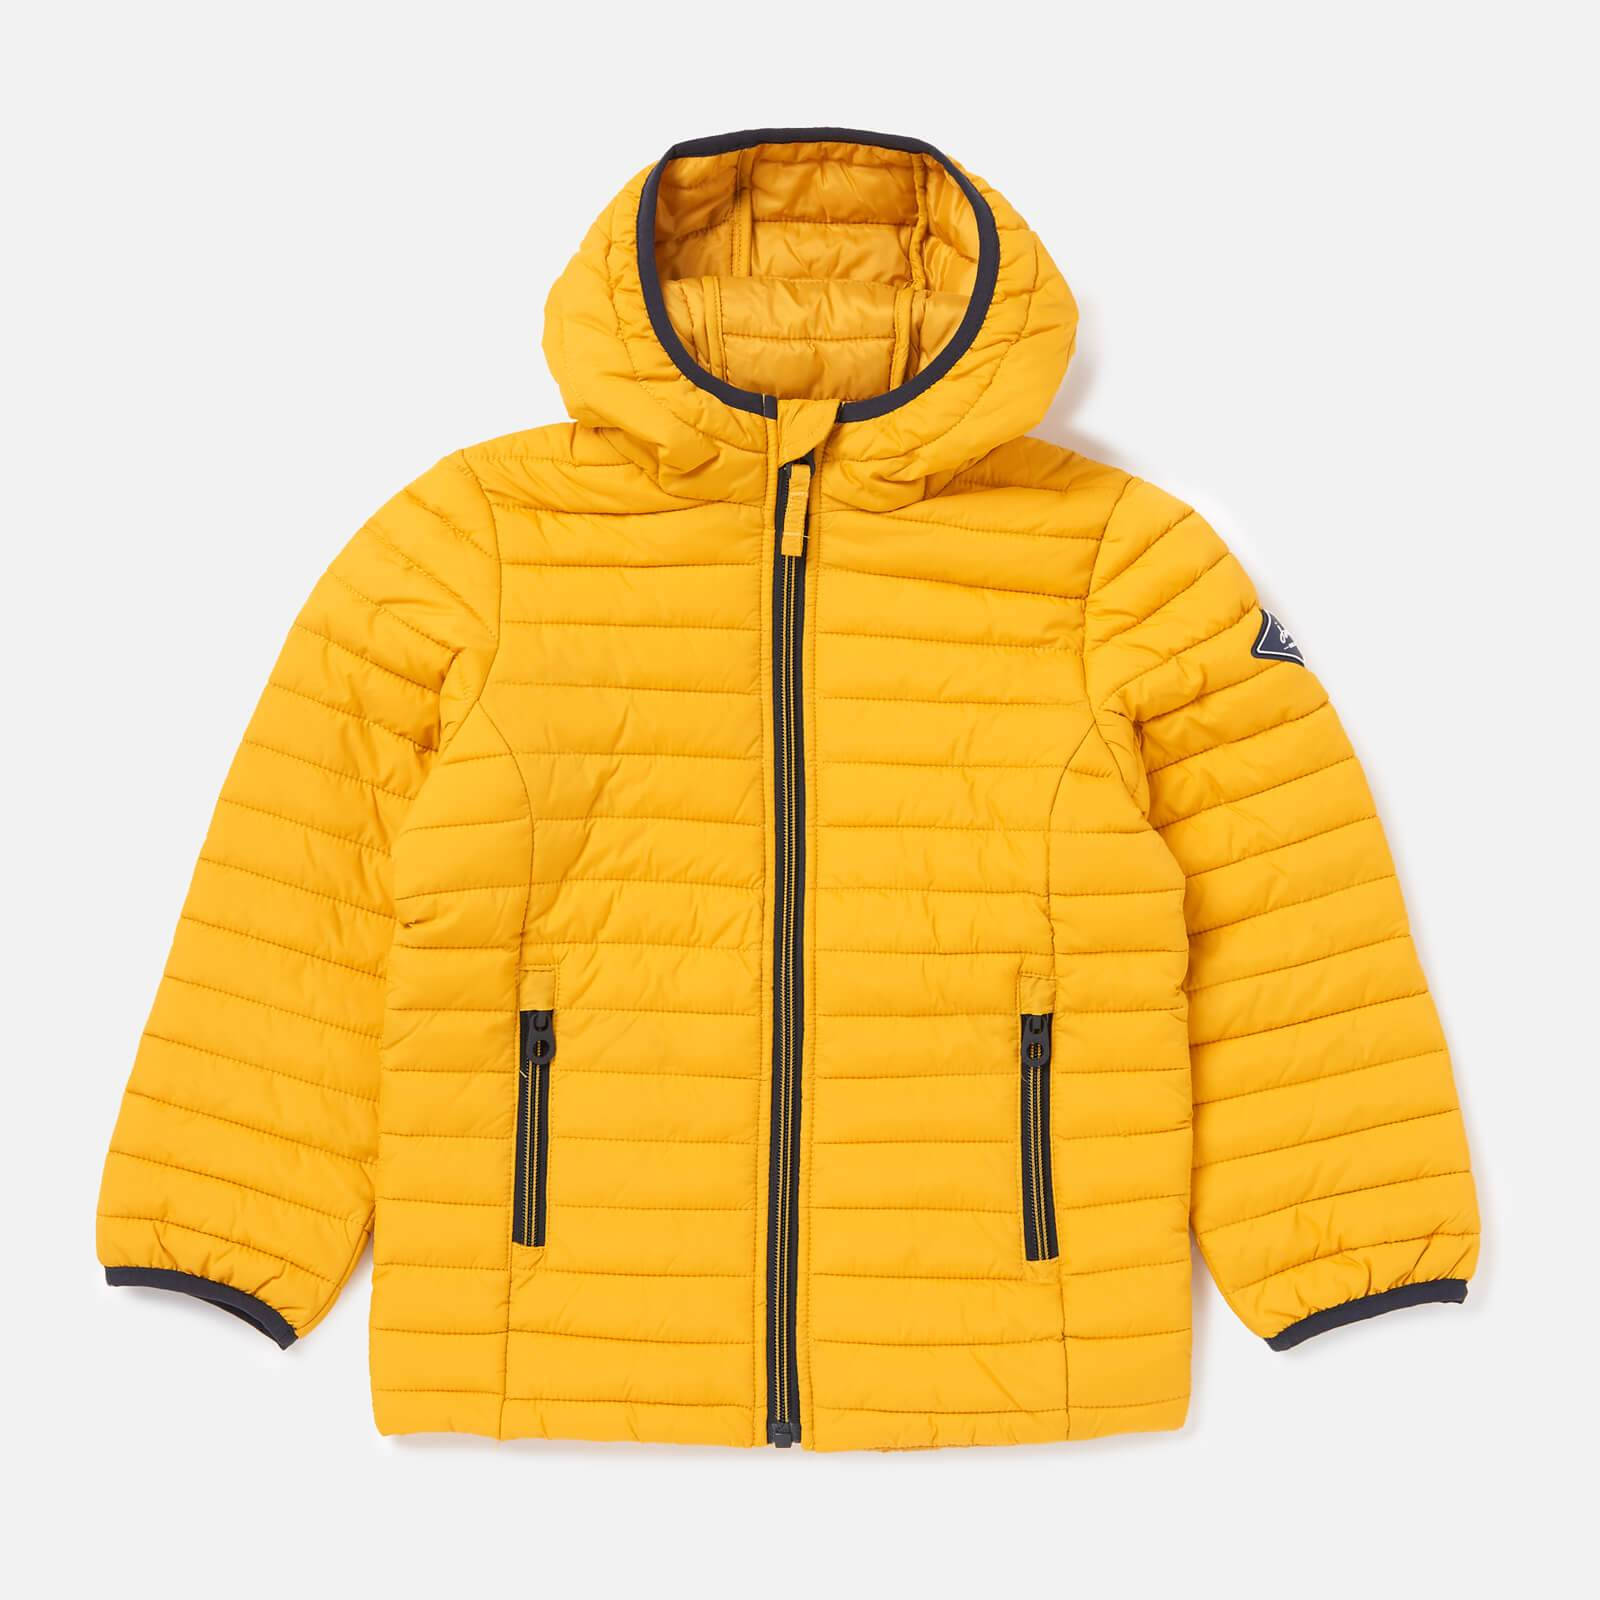 Joules Boys' Cairn Packaway Jacket - Antique Gold - 7-8 Years